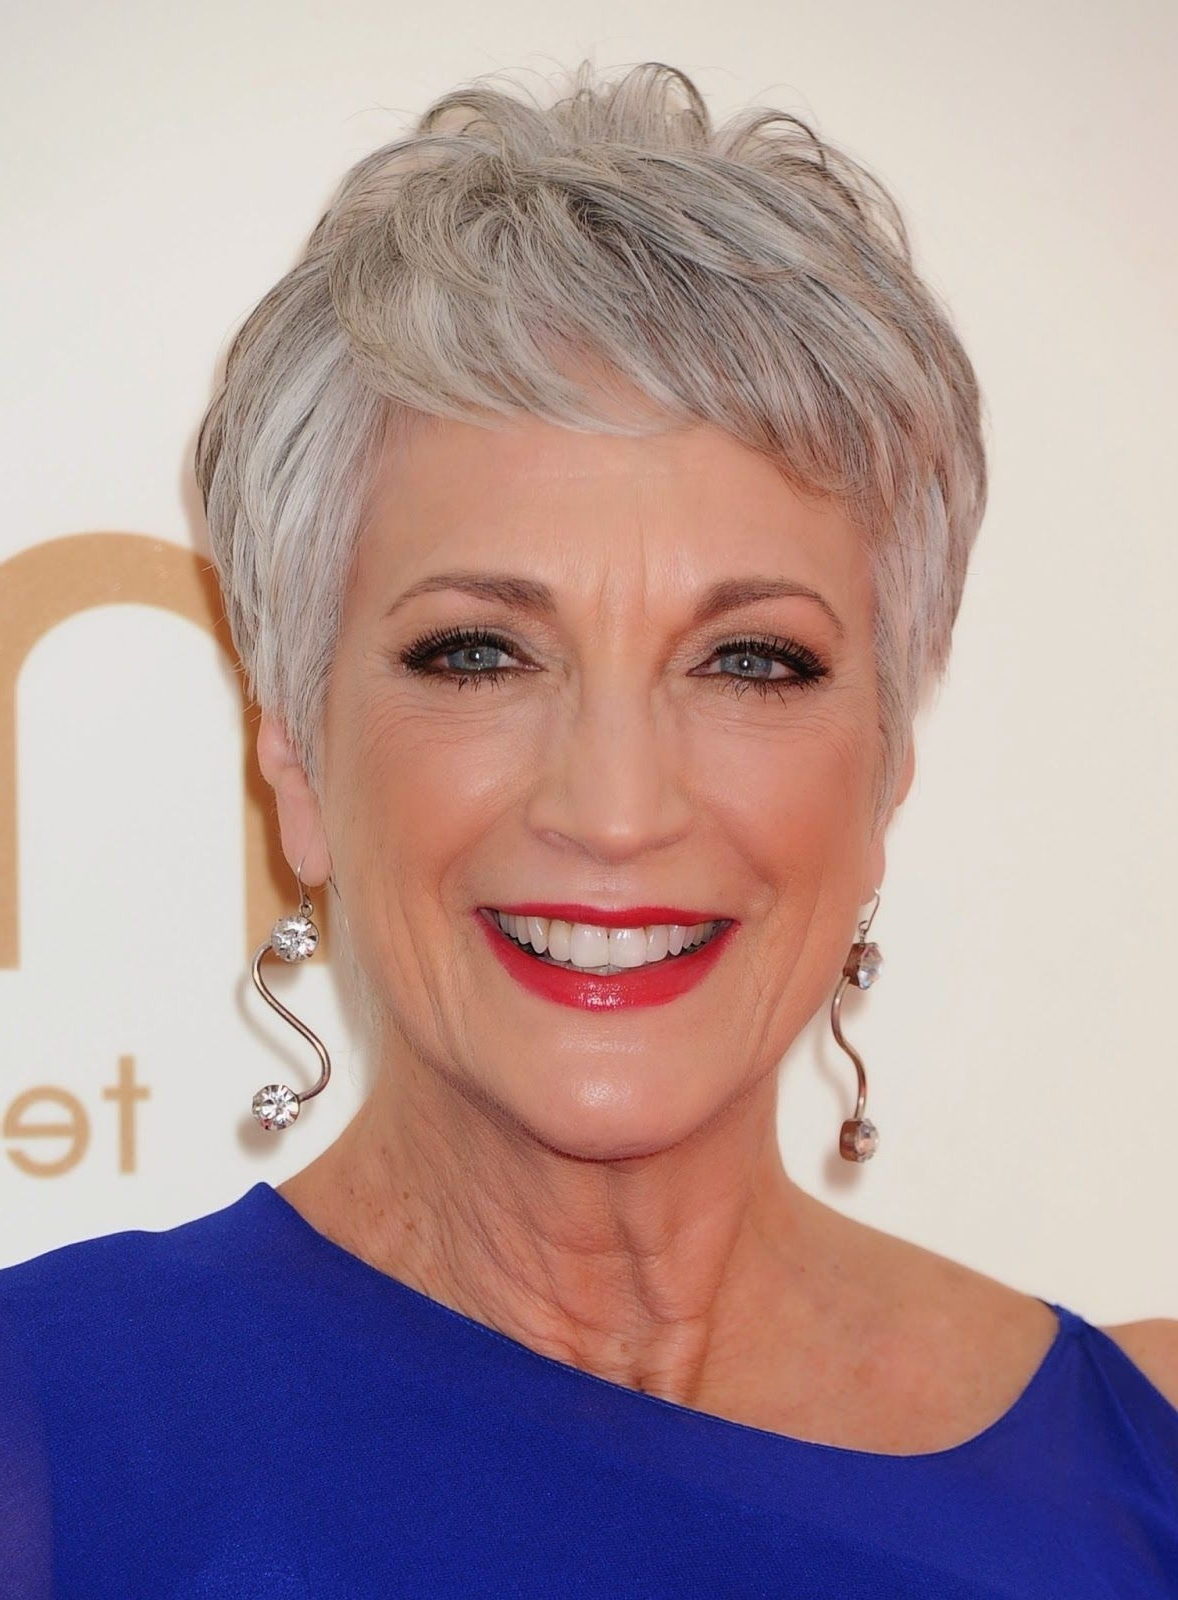 Explore Gallery Of Pixie Hairstyles For Women Over 50 Showing 6 Of